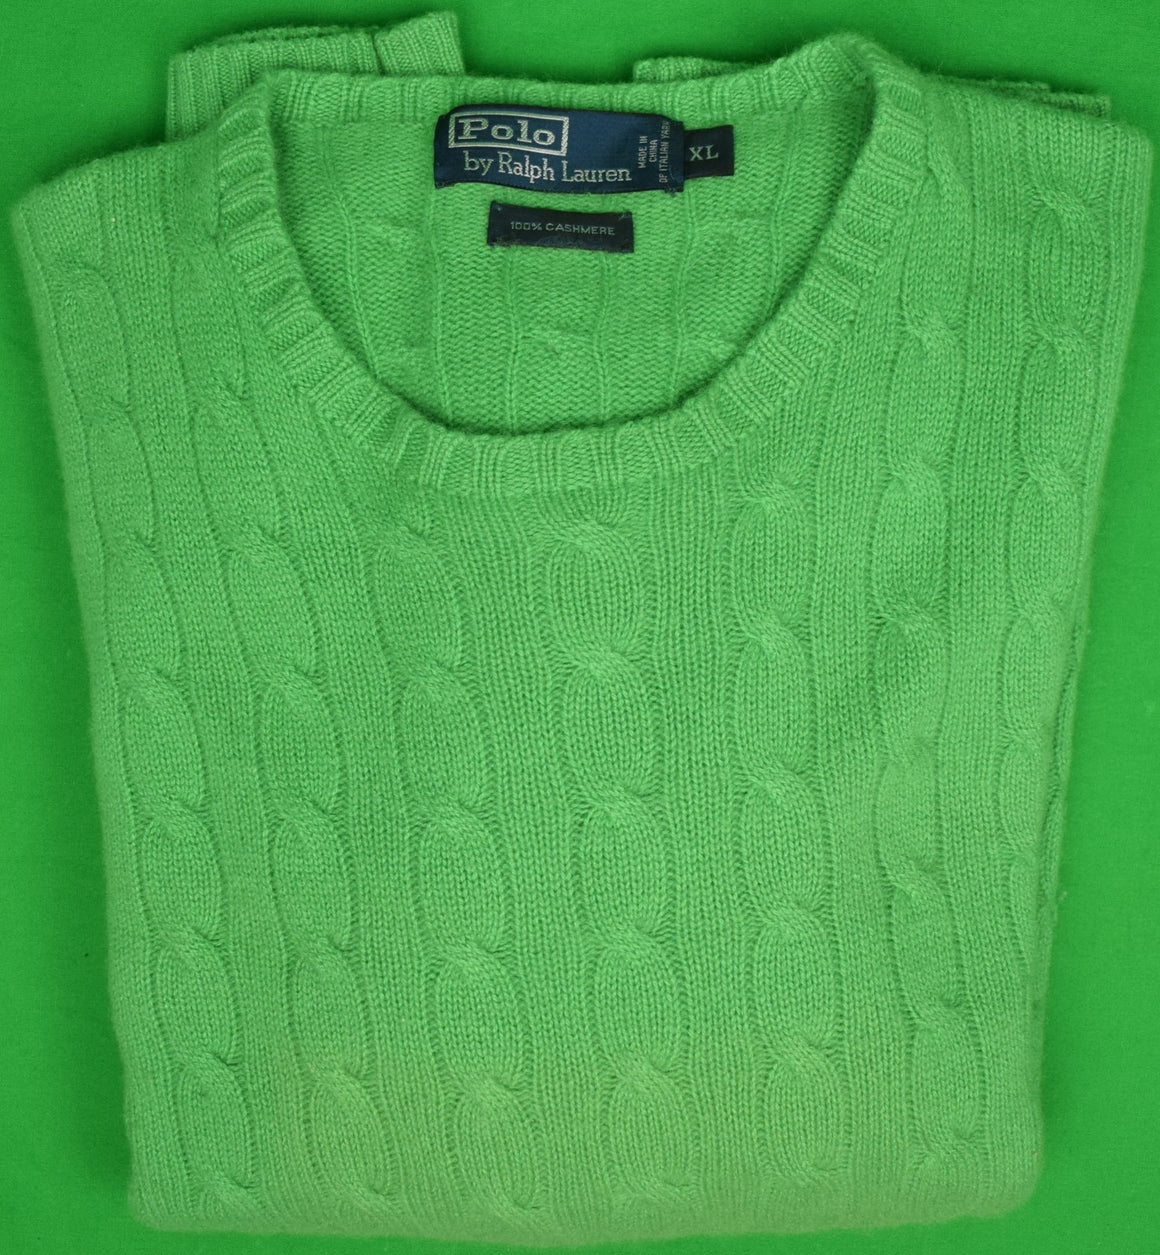 Polo by Ralph Lauren 100% Cashmere Kelly Green Cable Crew Neck Sweater Sz: XL